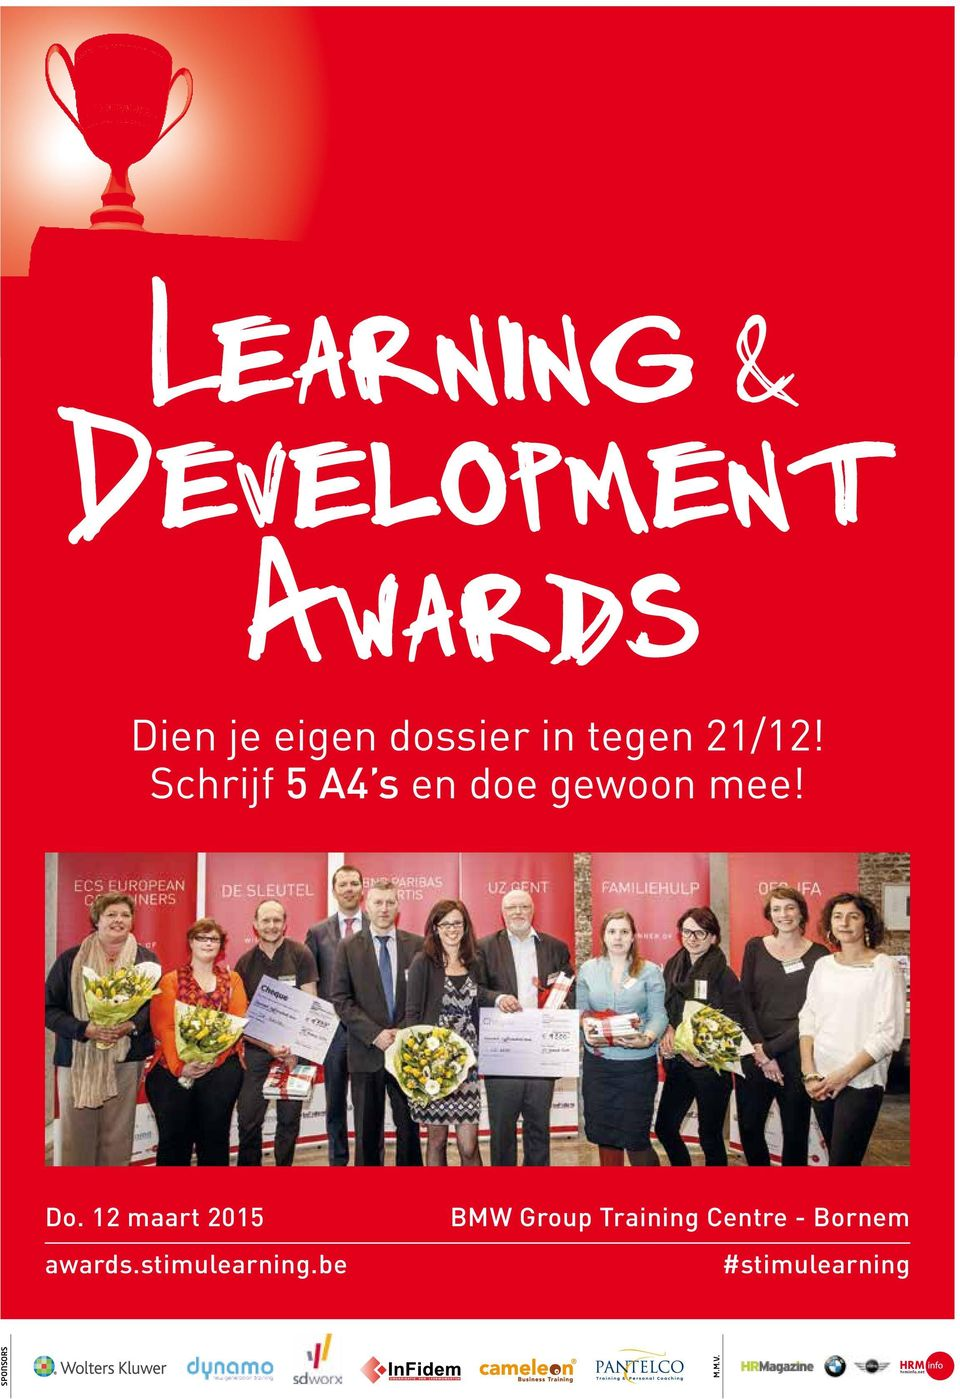 12 maart 2015 awards.stimulearning.